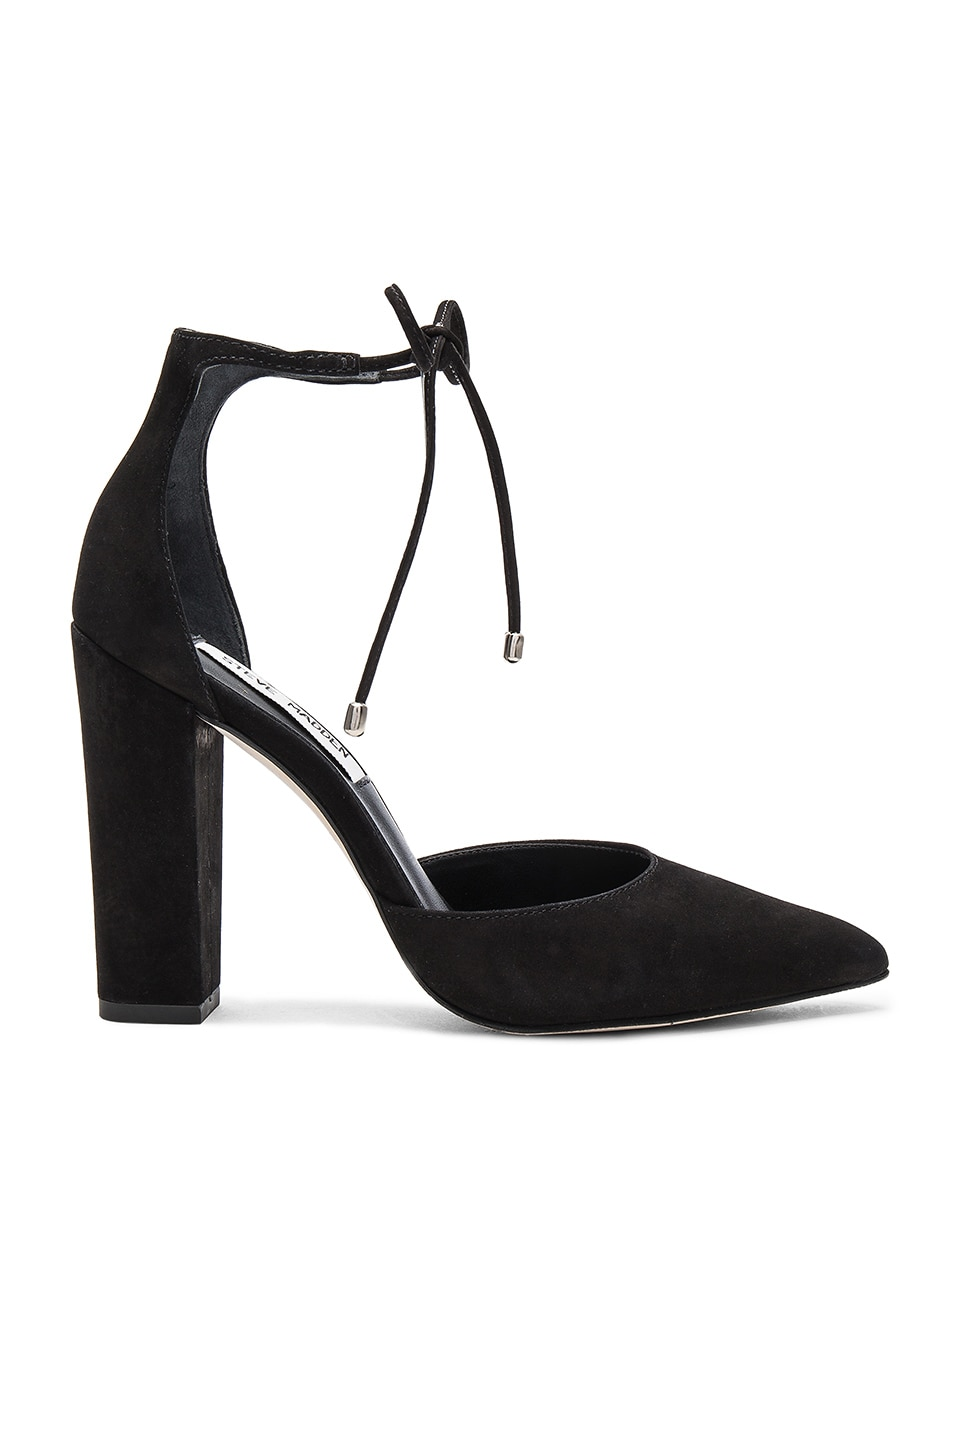 Steve Madden Pampered Heel in Black Nubuck